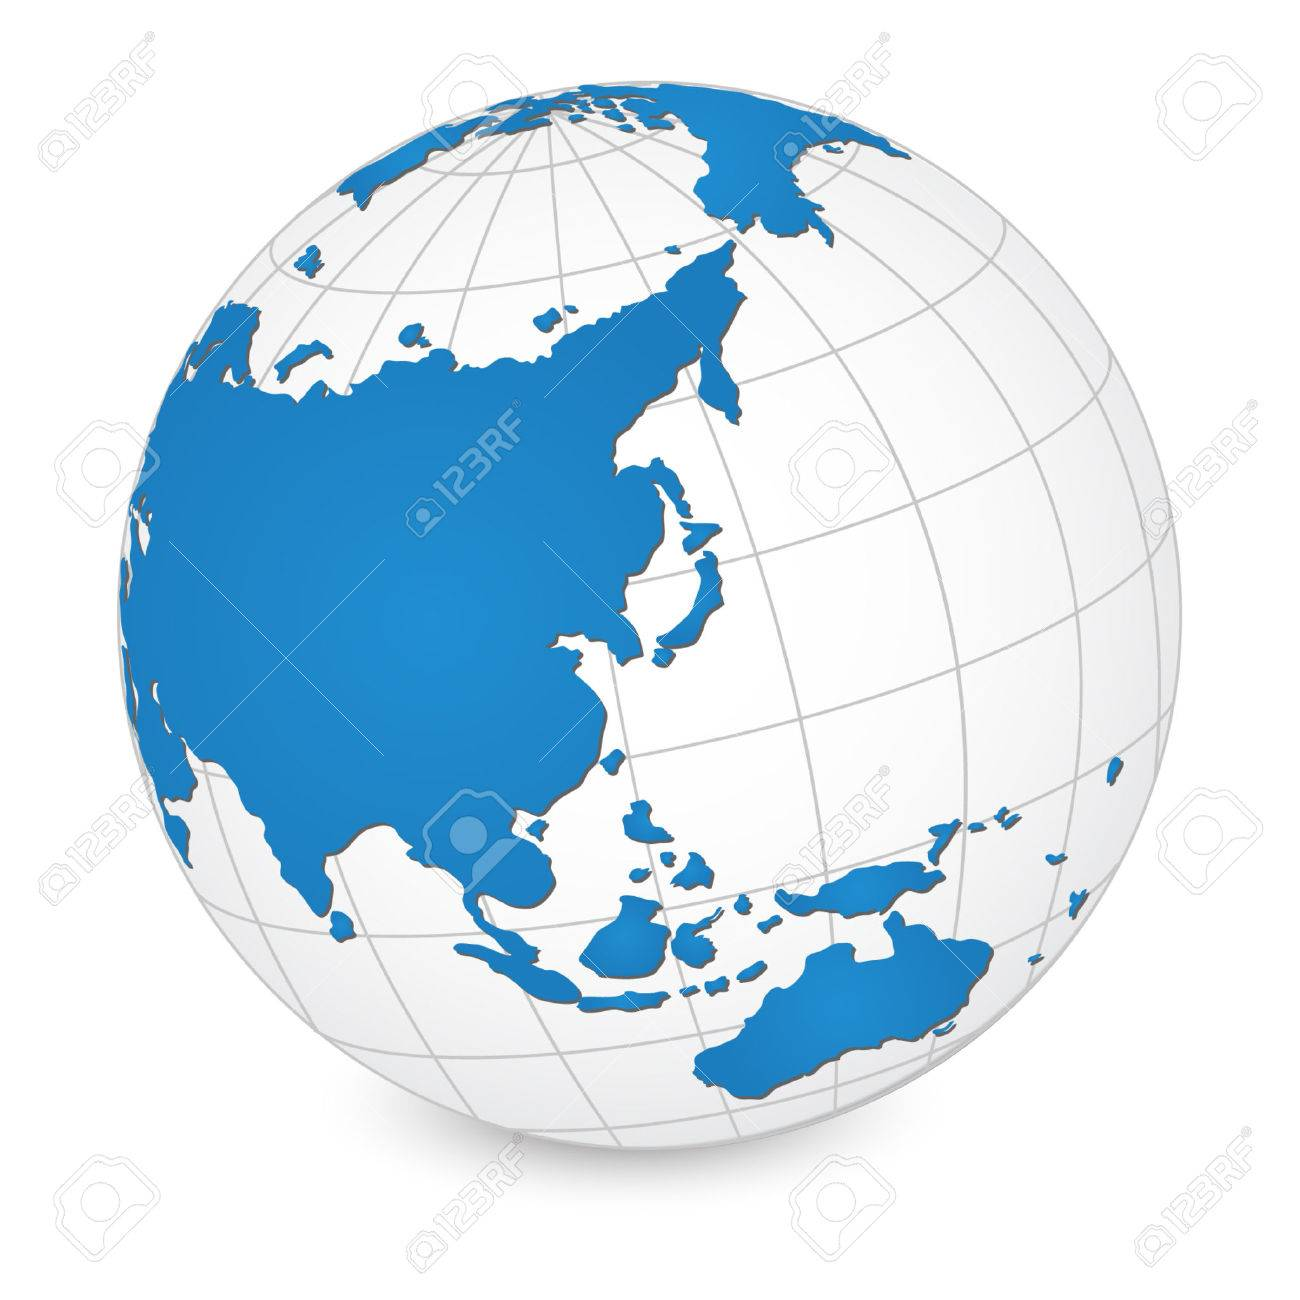 World map and globe detail vector illustration royalty free cliparts vector world map and globe detail vector illustration gumiabroncs Gallery